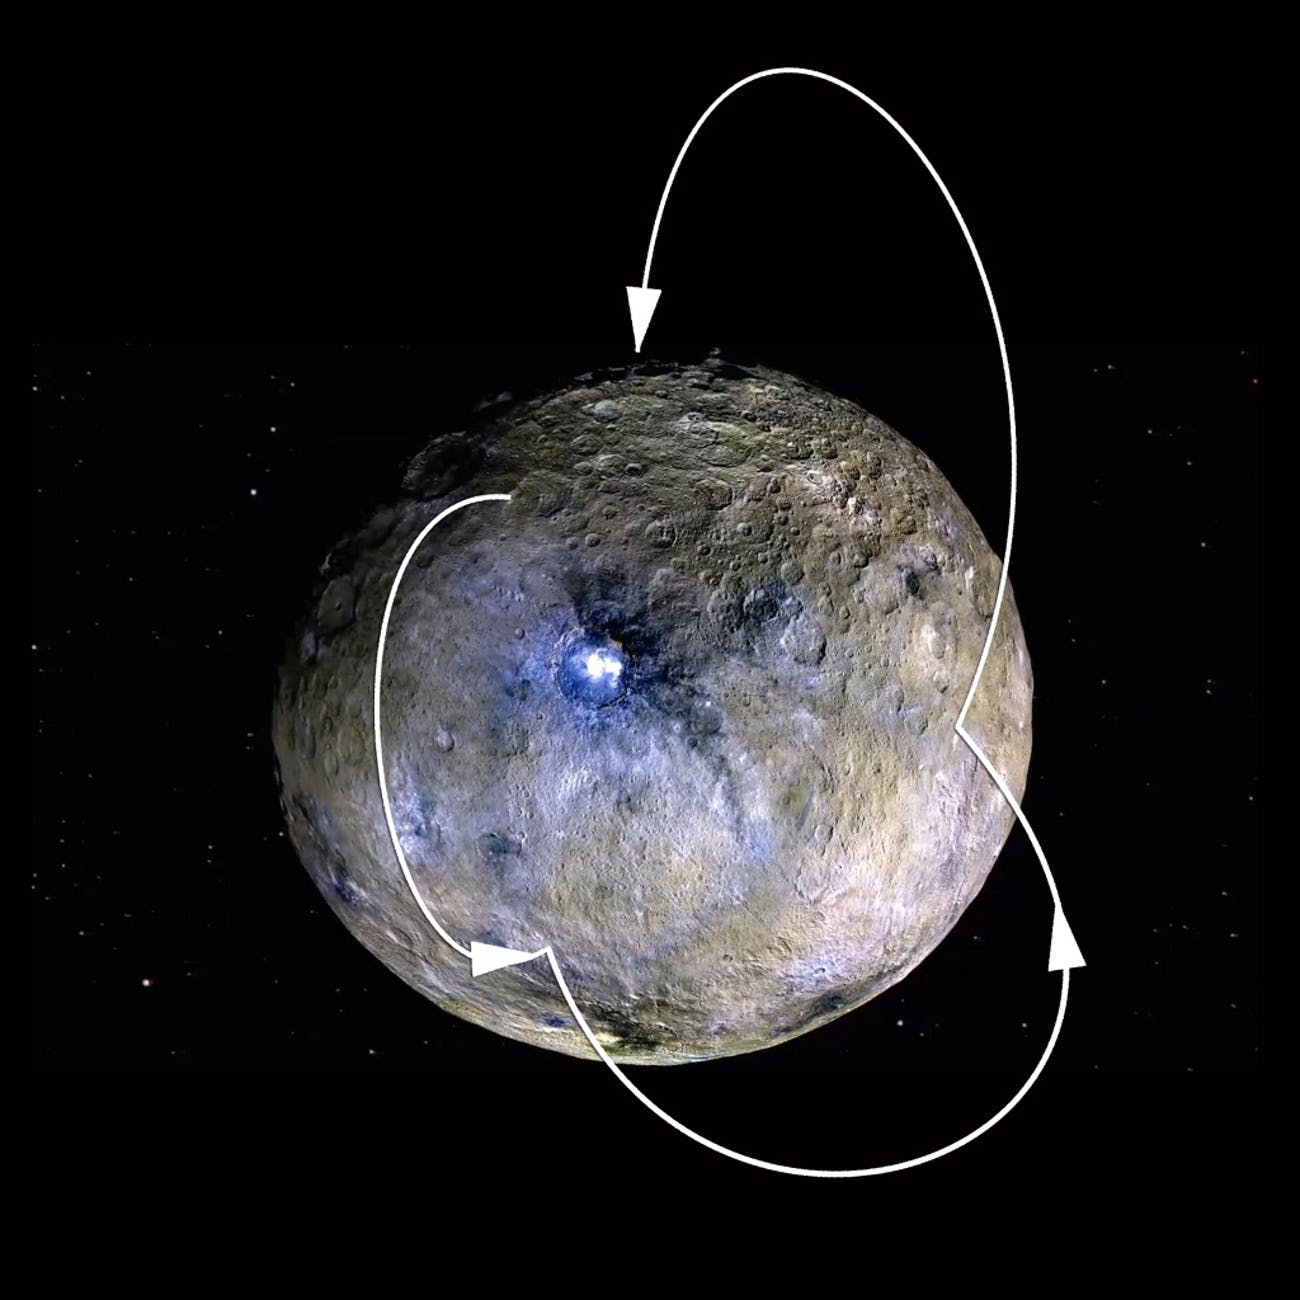 Water at the polar regions on Ceres freezes and becomes trapped.